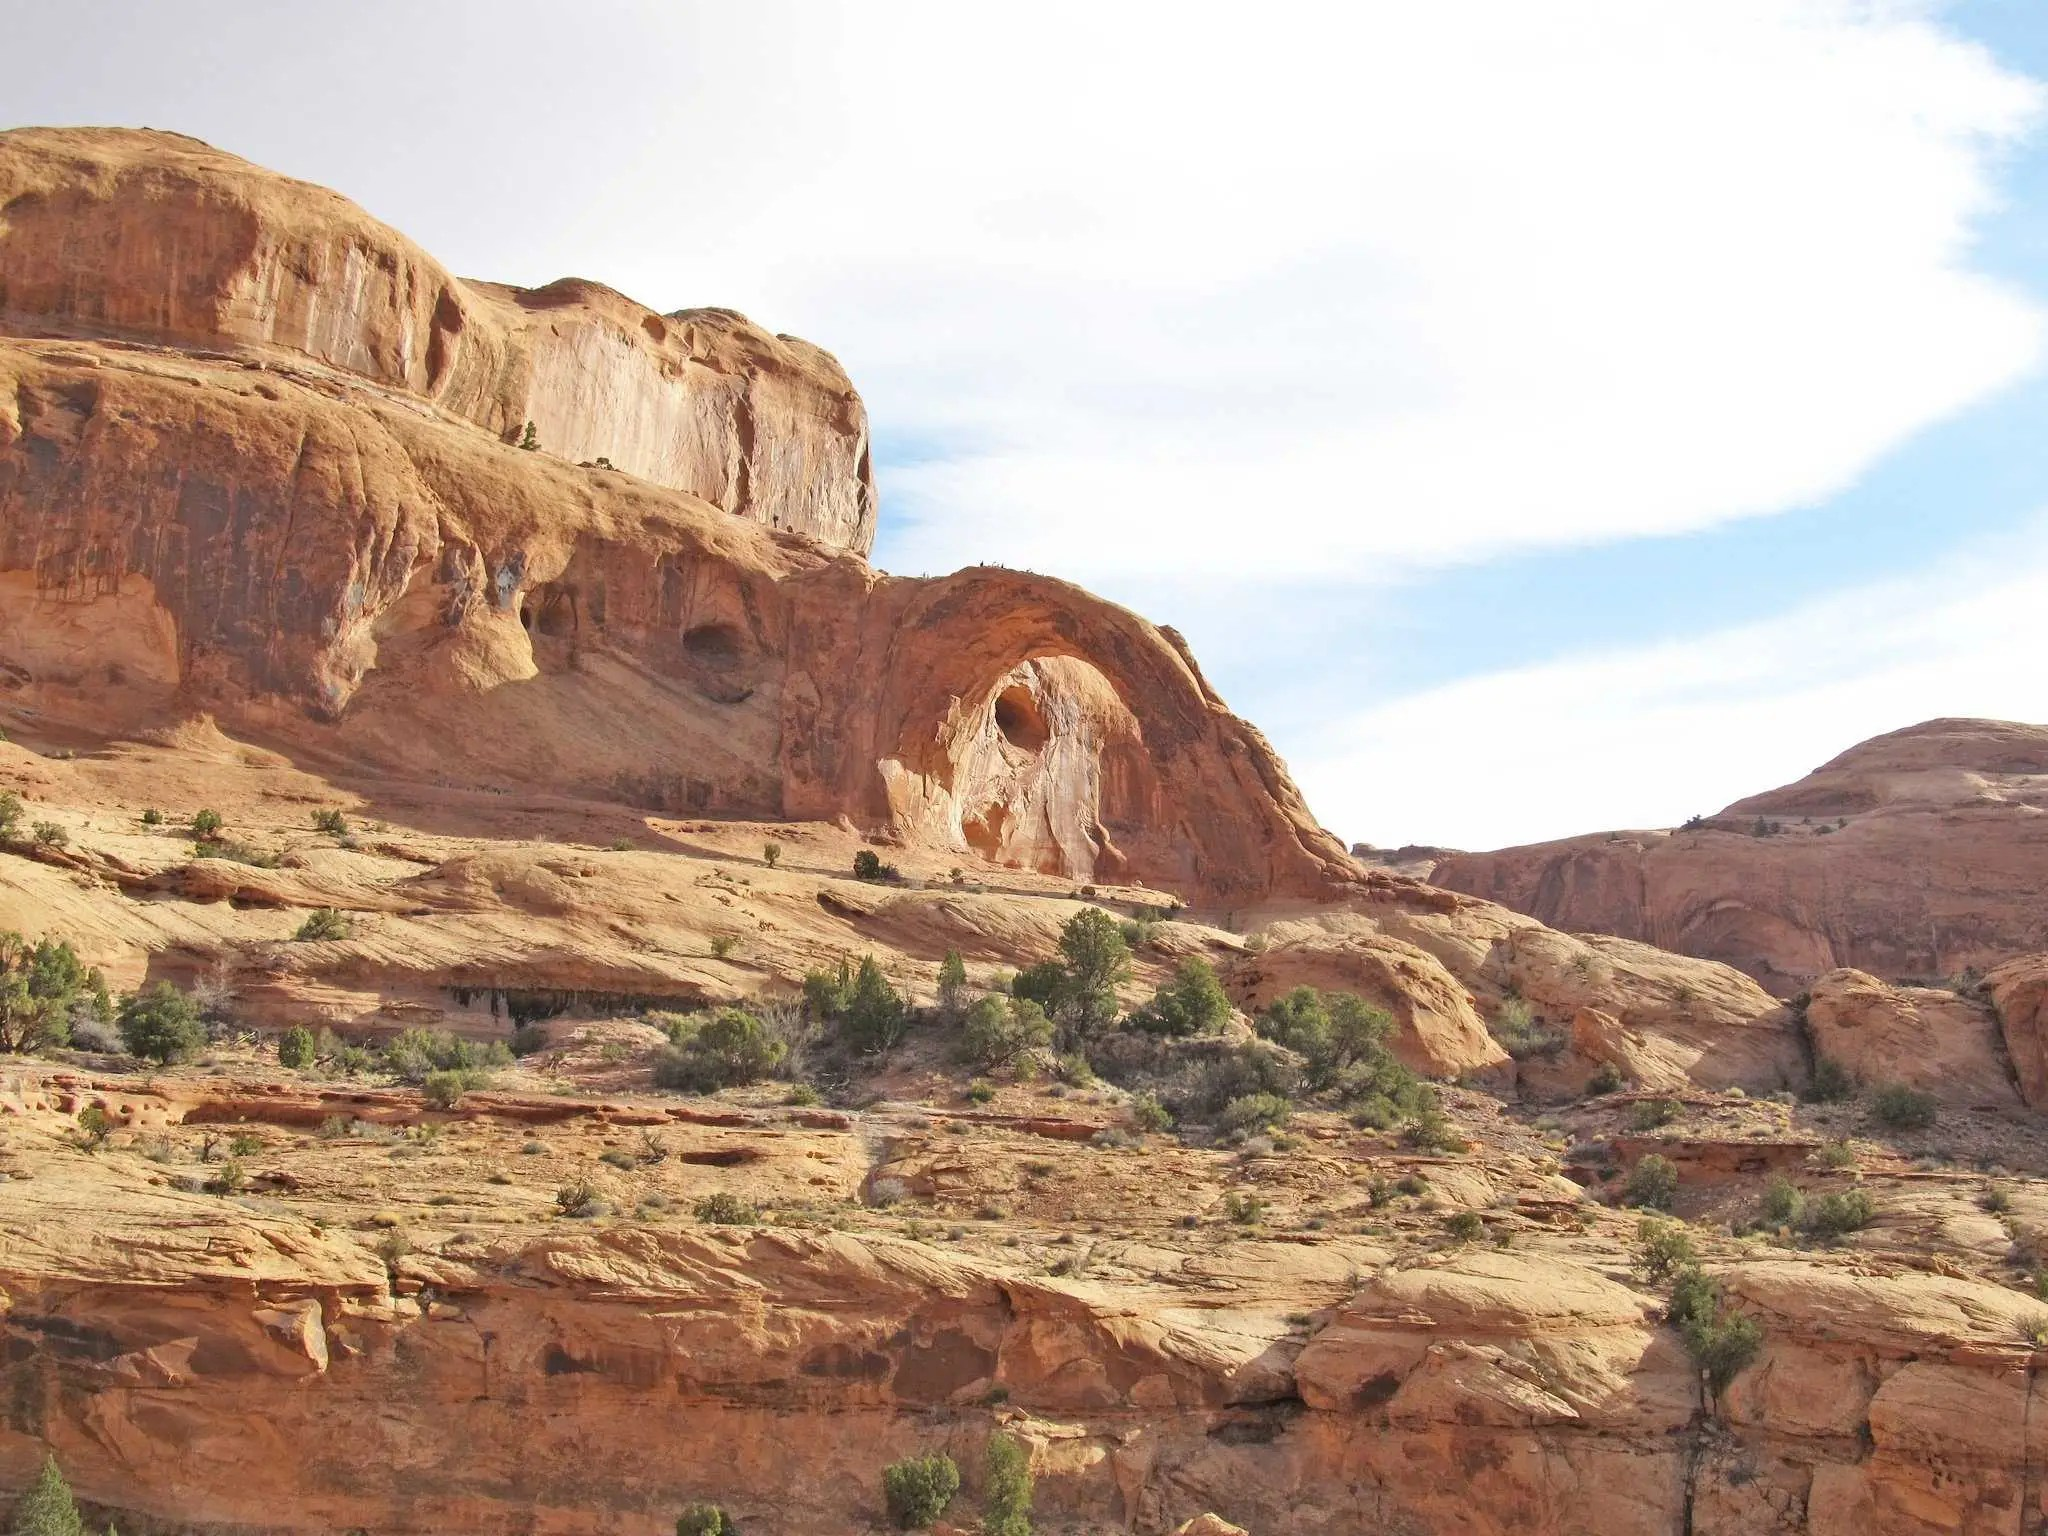 Mountain bike along the Poison Spider Mesa Trail in Moab, Utah.